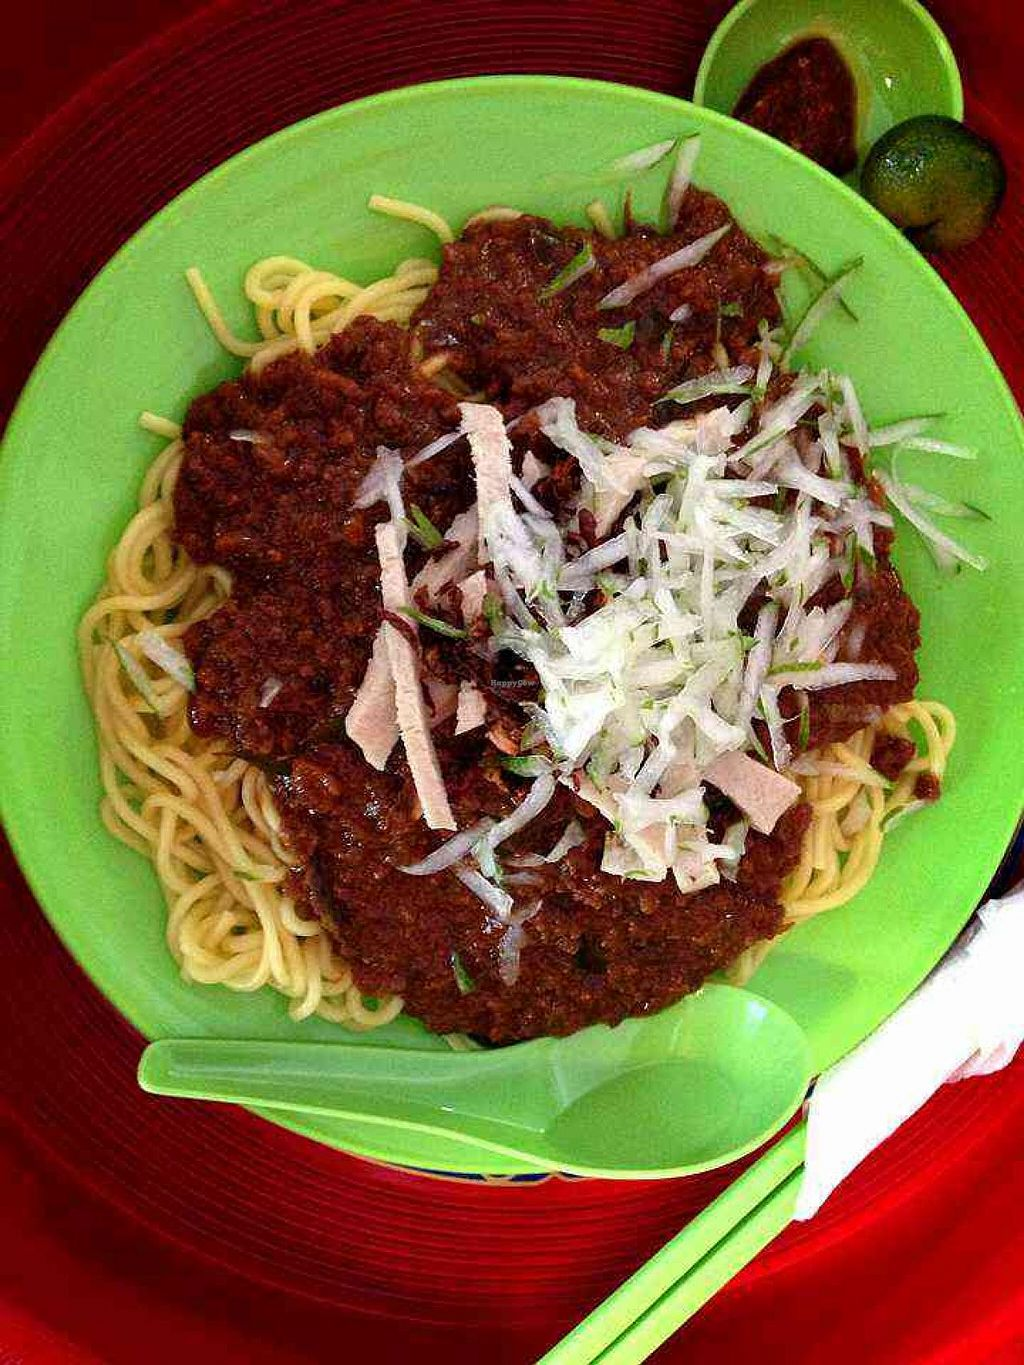 """Photo of CLOSED: Indo Vege  by <a href=""""/members/profile/tony%20surf"""">tony surf</a> <br/>Indonesian vegetarian rojak noodles. The gravy made from peanut sauces with spices. One of the chef favorite foods <br/> April 21, 2014  - <a href='/contact/abuse/image/46666/68227'>Report</a>"""